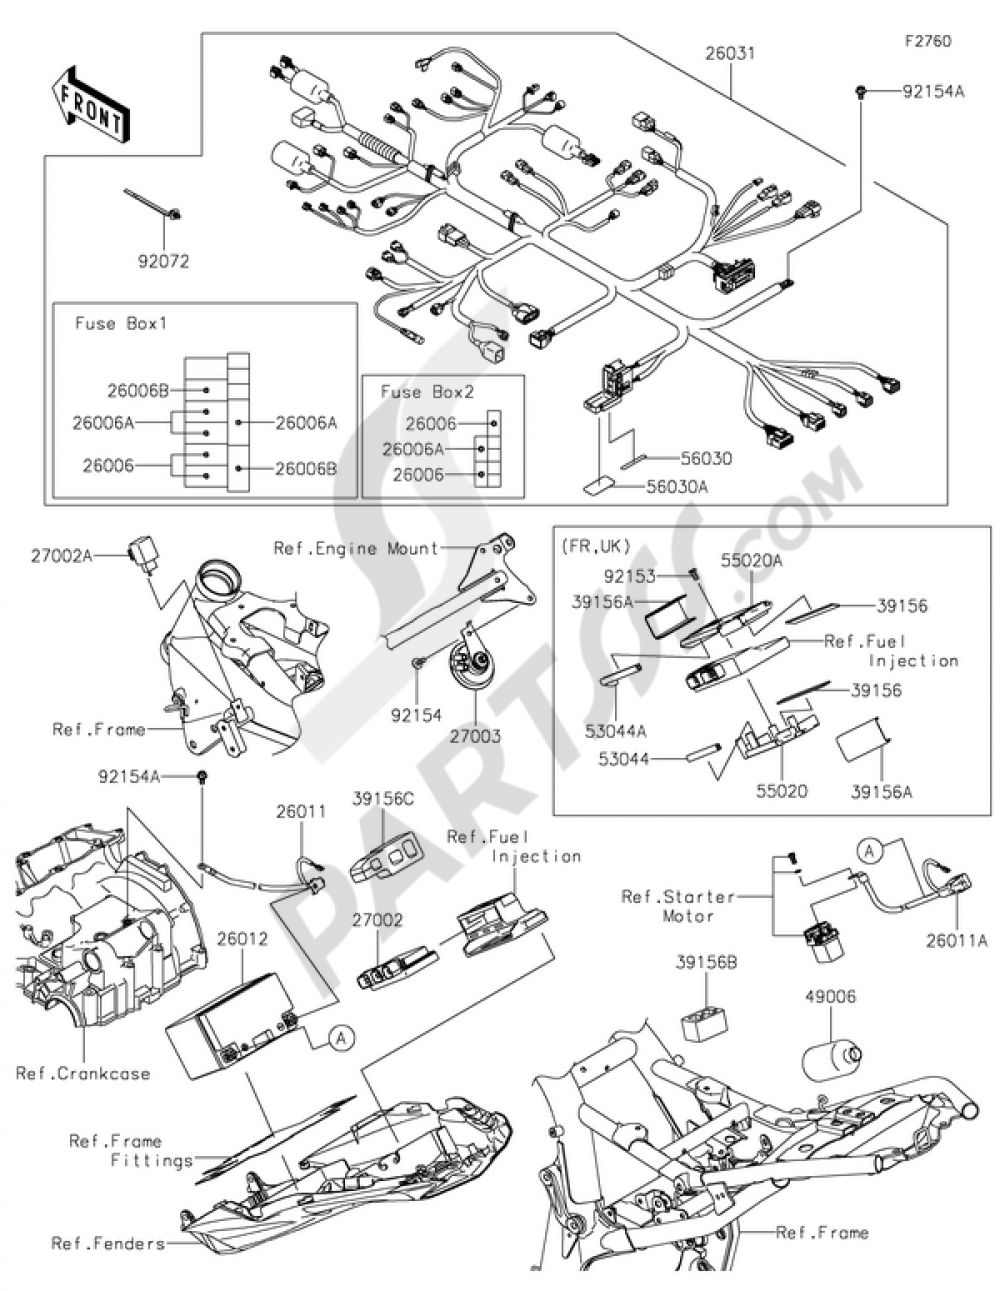 chassis electrical equipment kawasaki z800 abs 2014